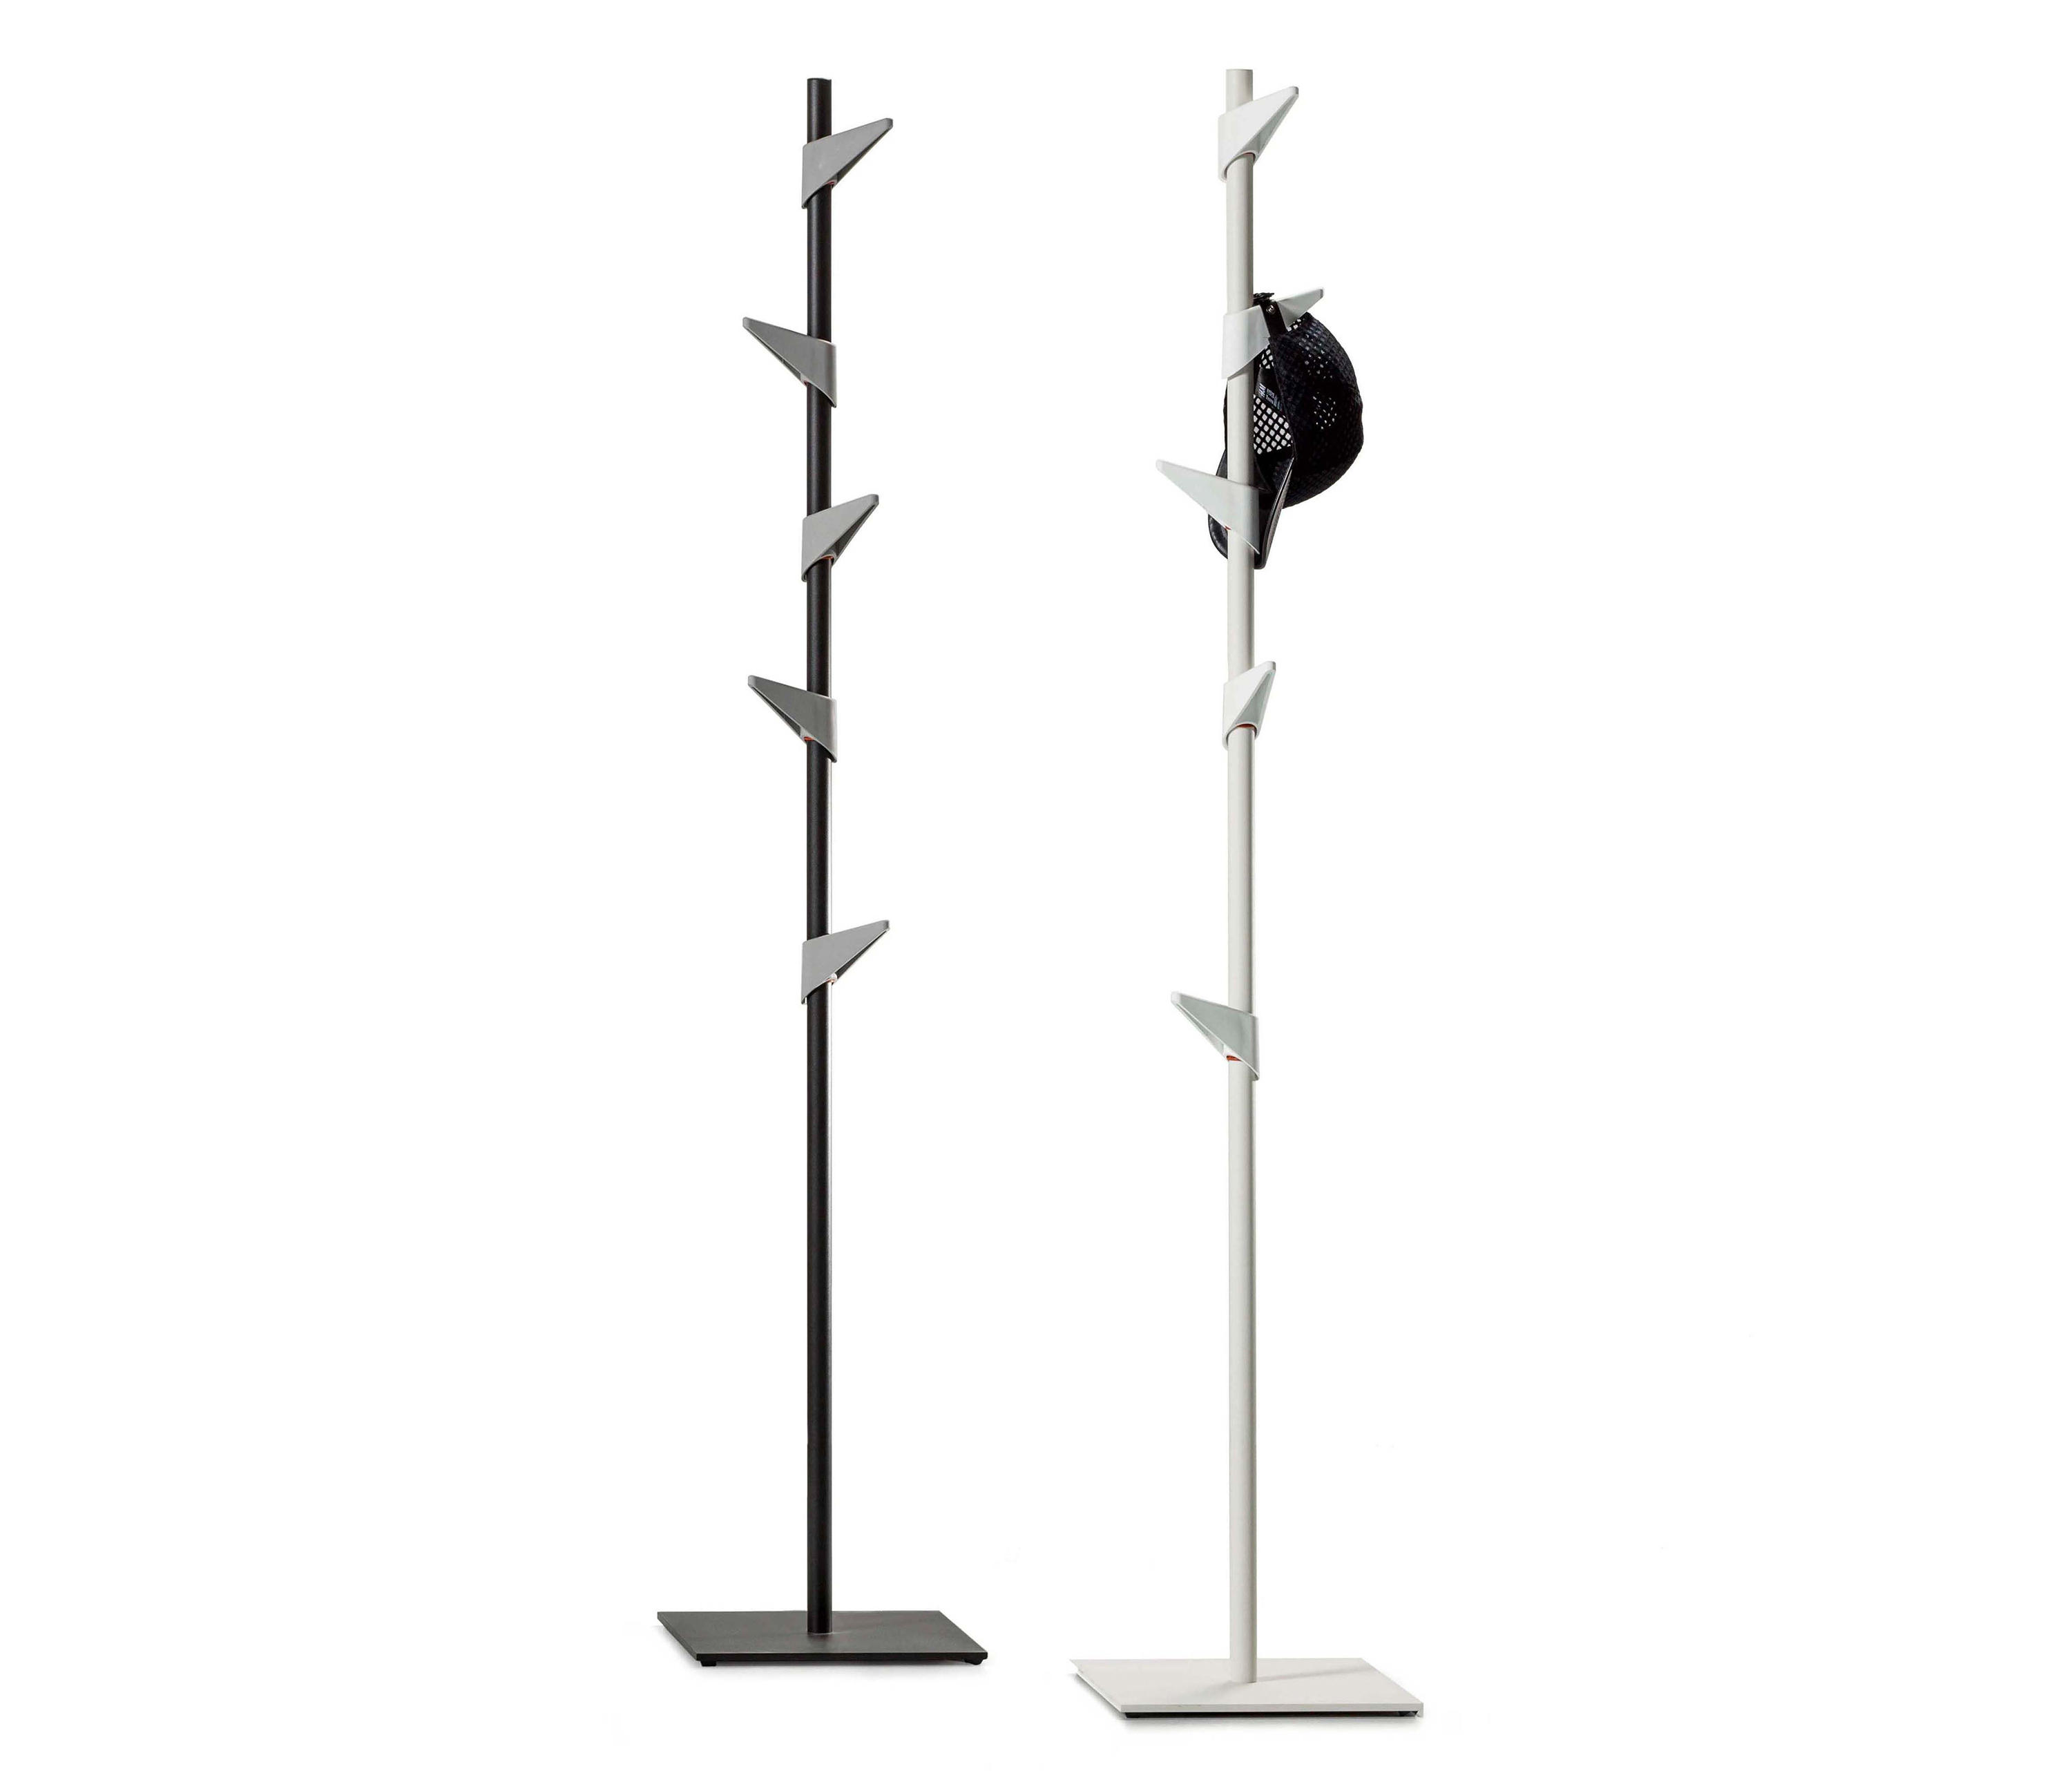 Bamboo Steel coat stand | Architonic